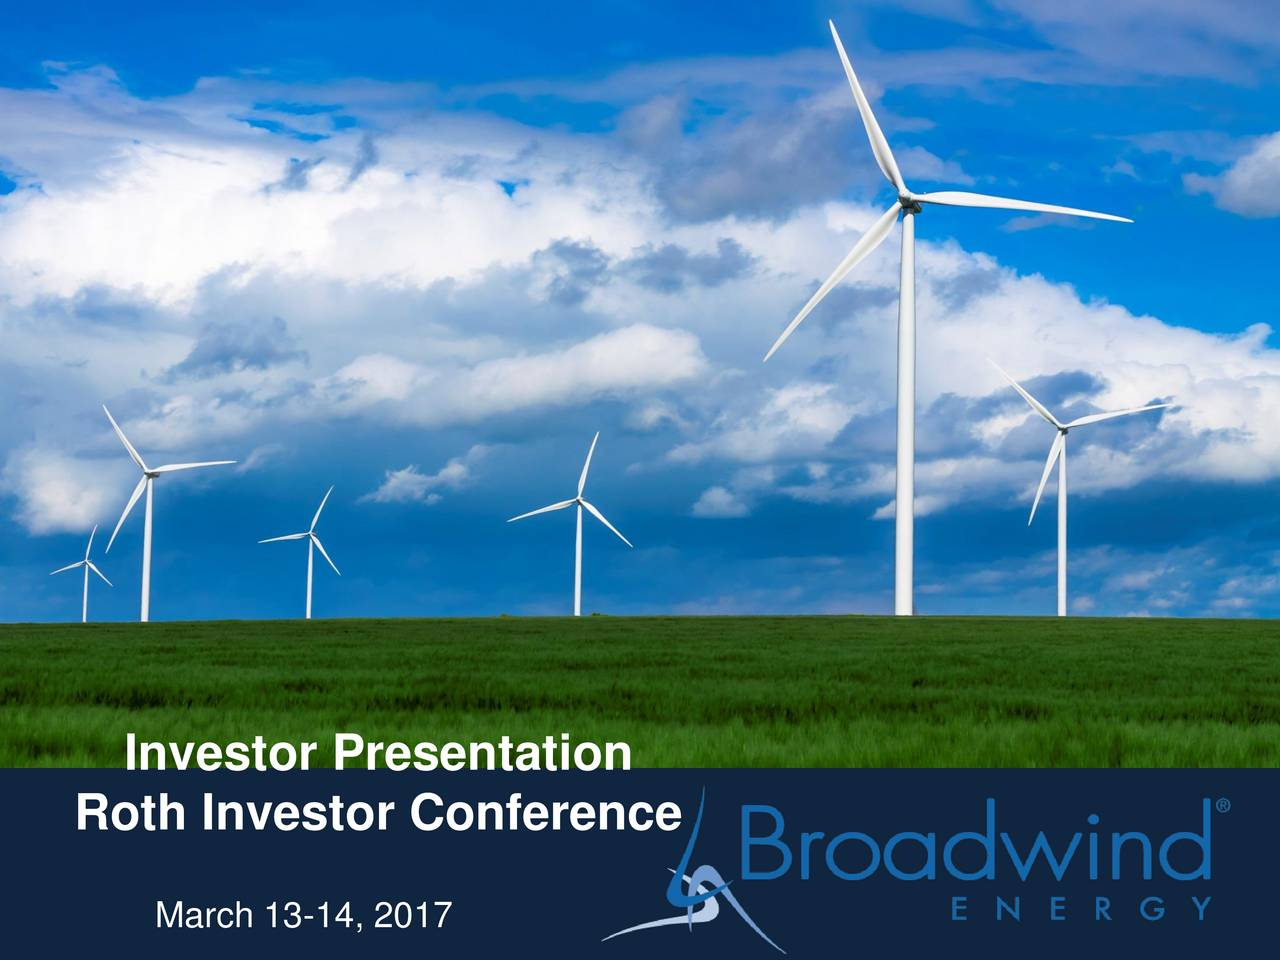 Roth Investor Conference March 13-14, 2017